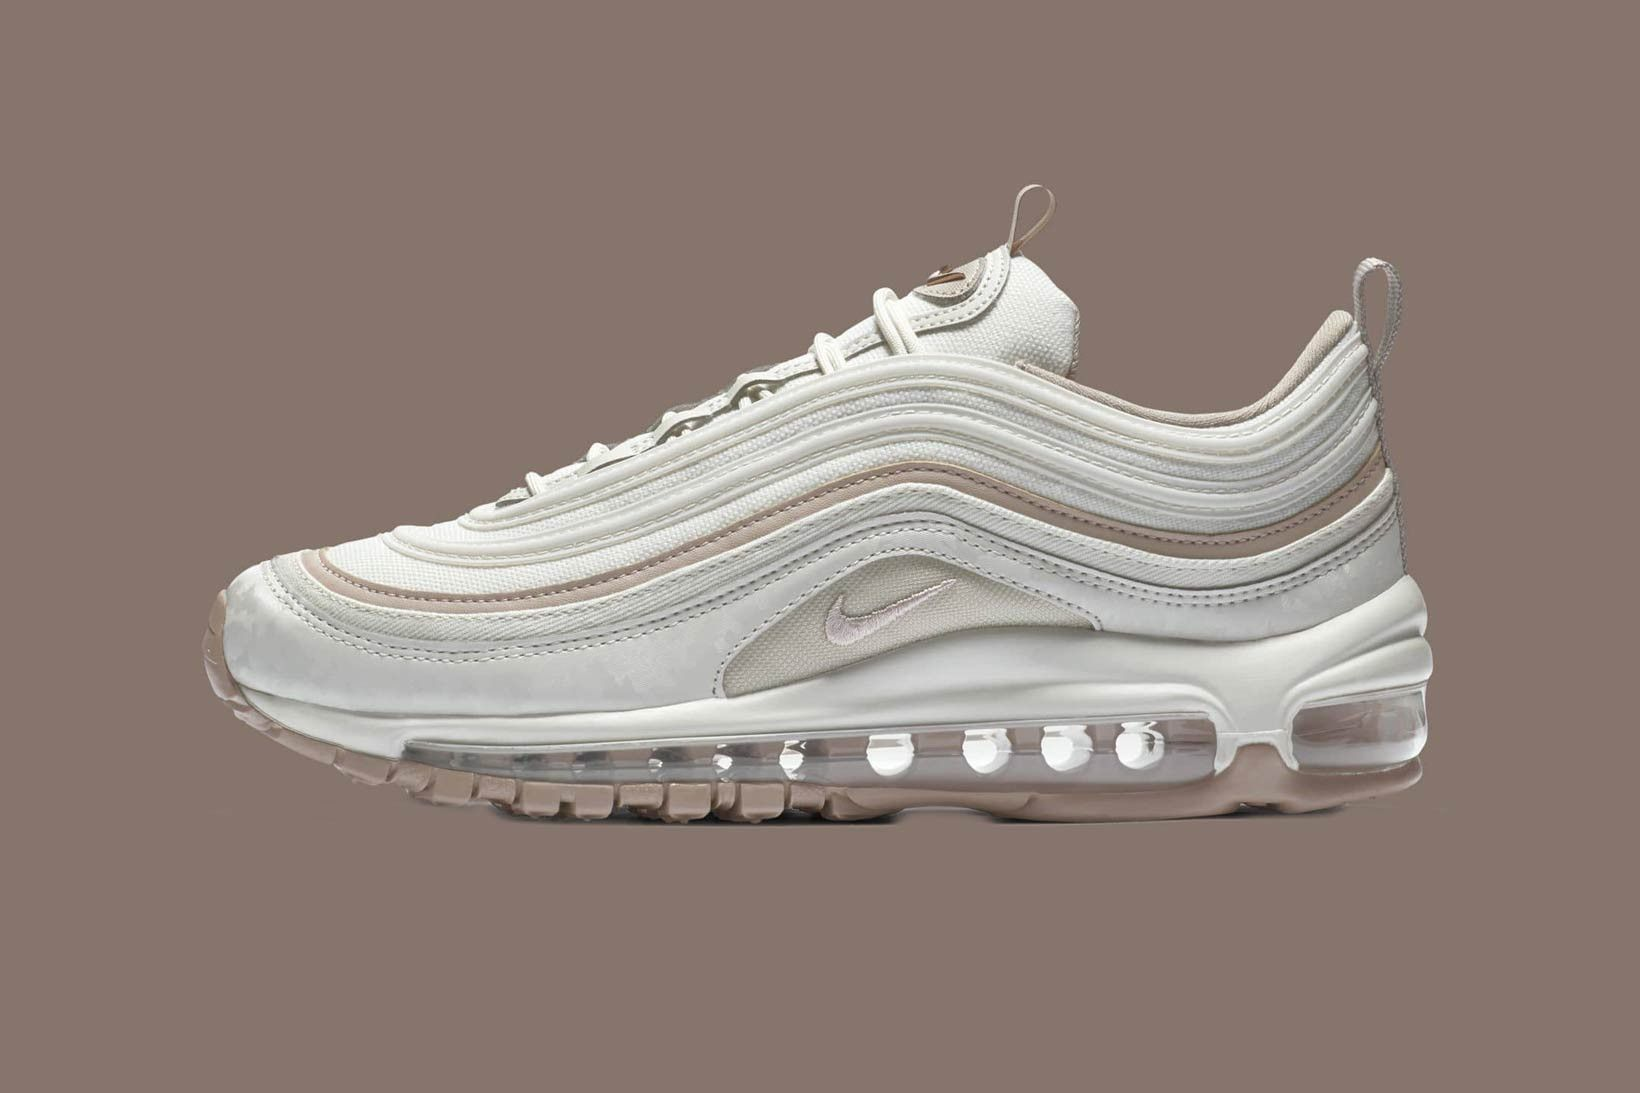 Nike's Air Max 97 Premium Arrives in Rose Gold | Nike air